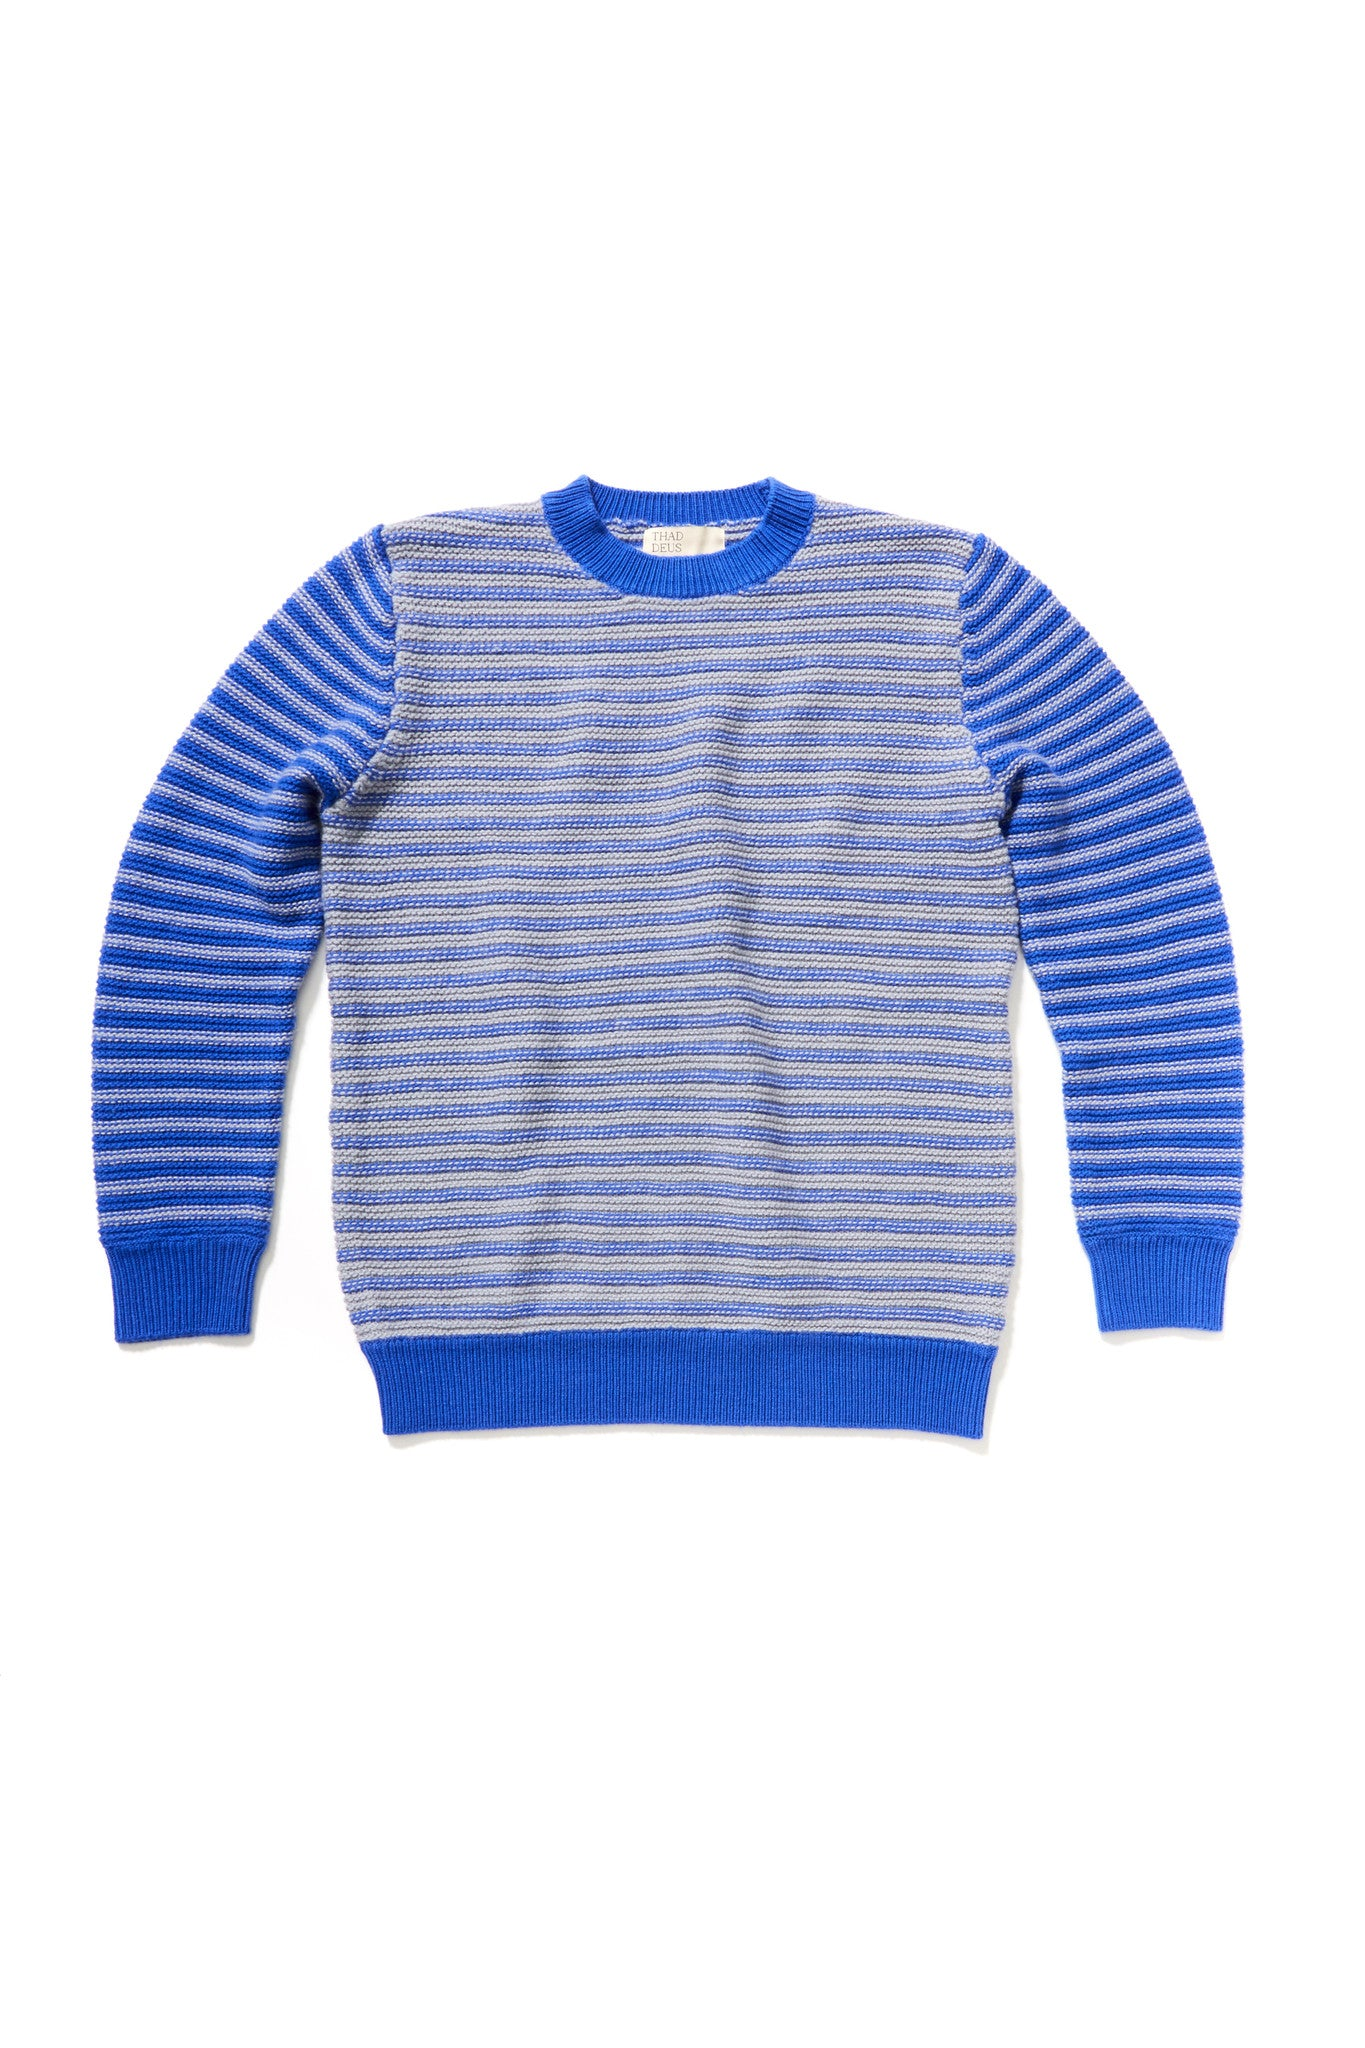 Static Crew Neck Sweater